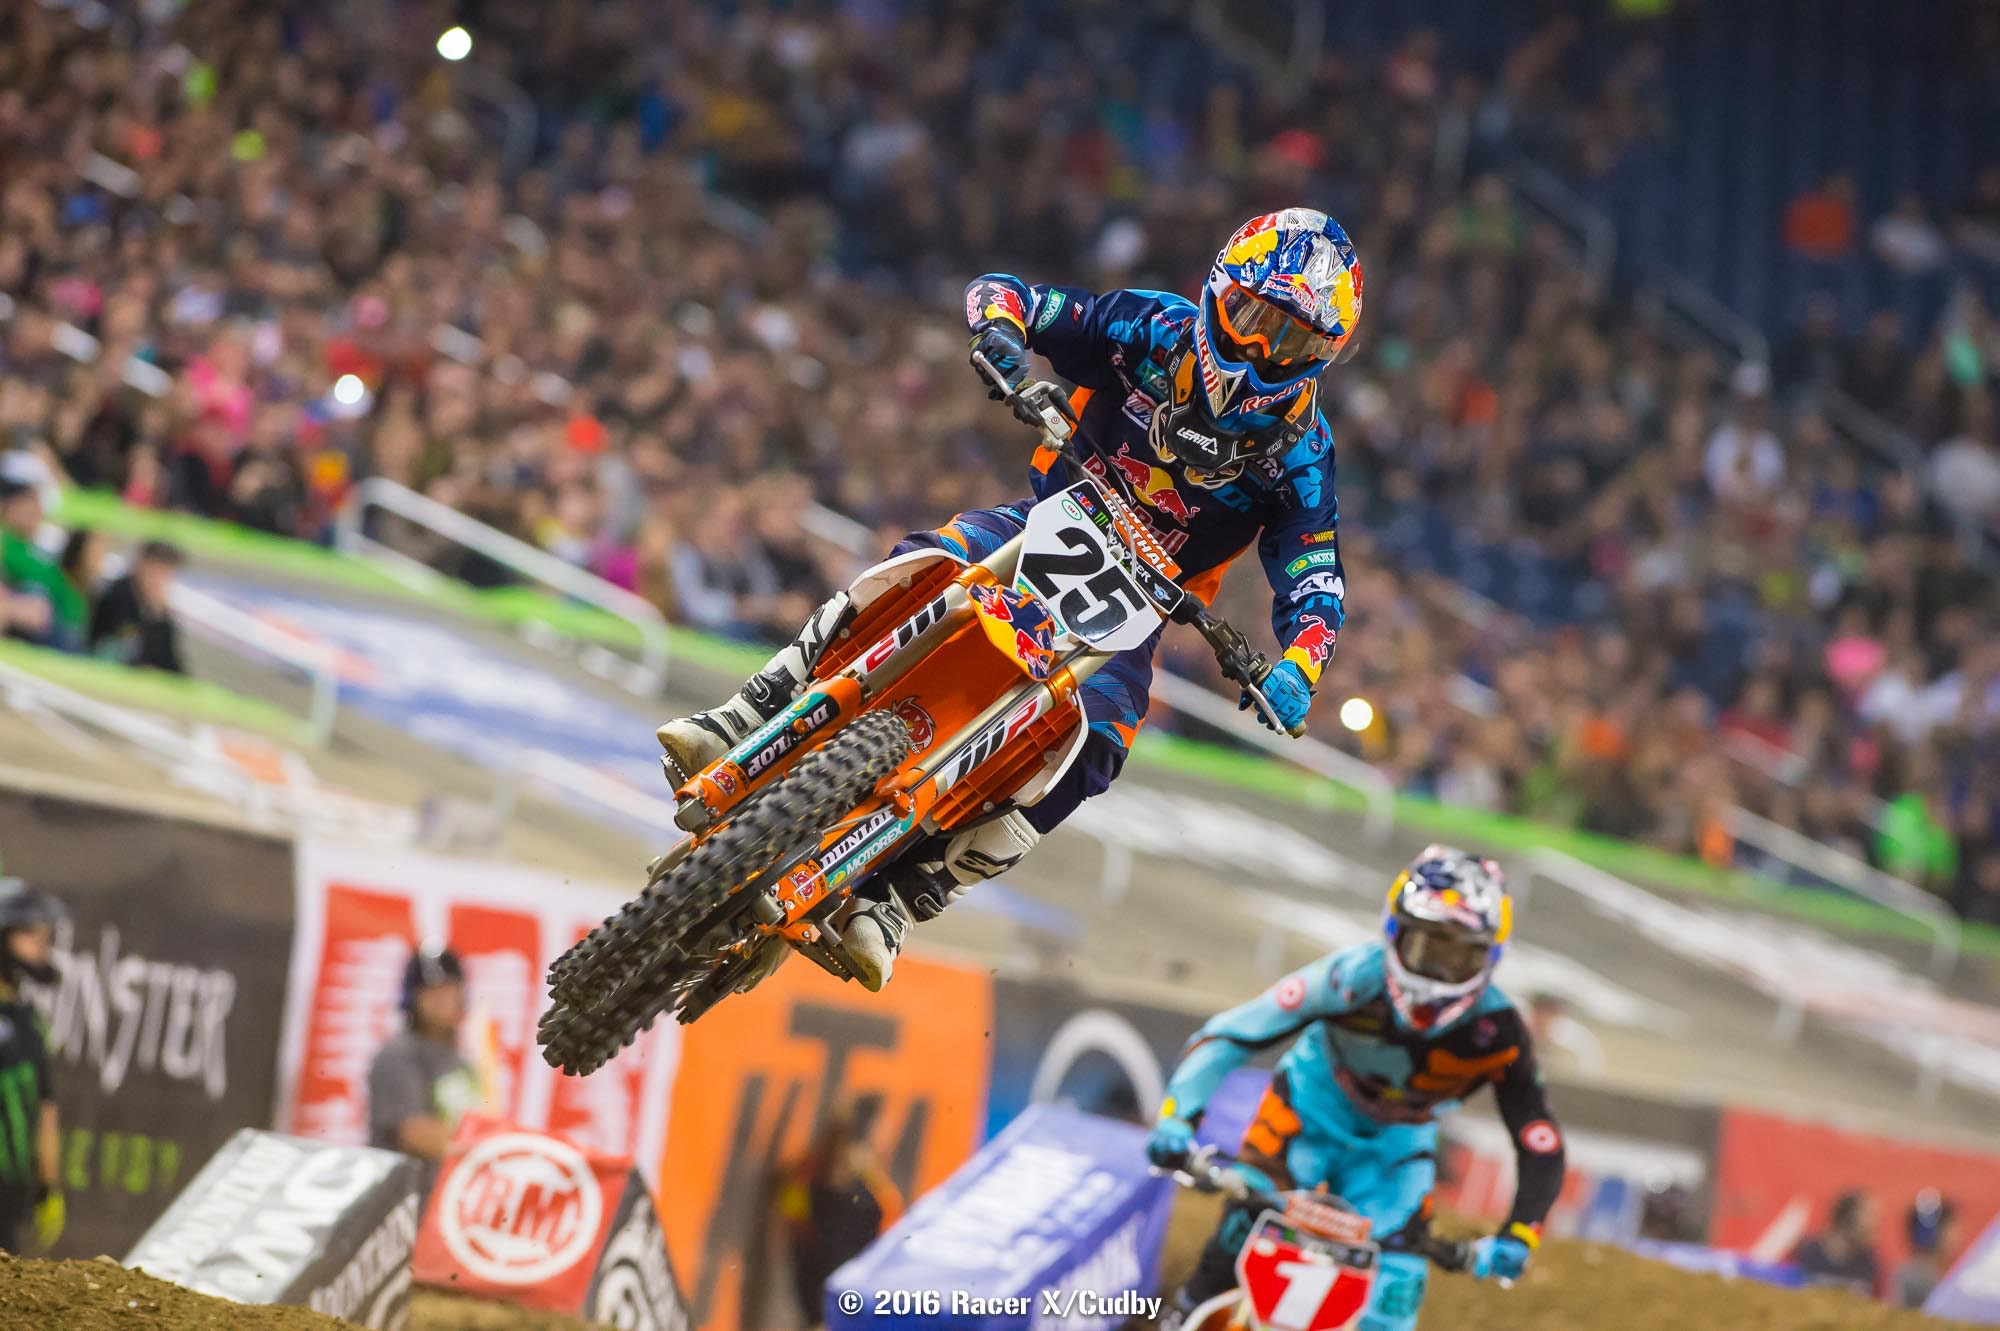 Musquin led briefly but Dungey got him in the whoops.